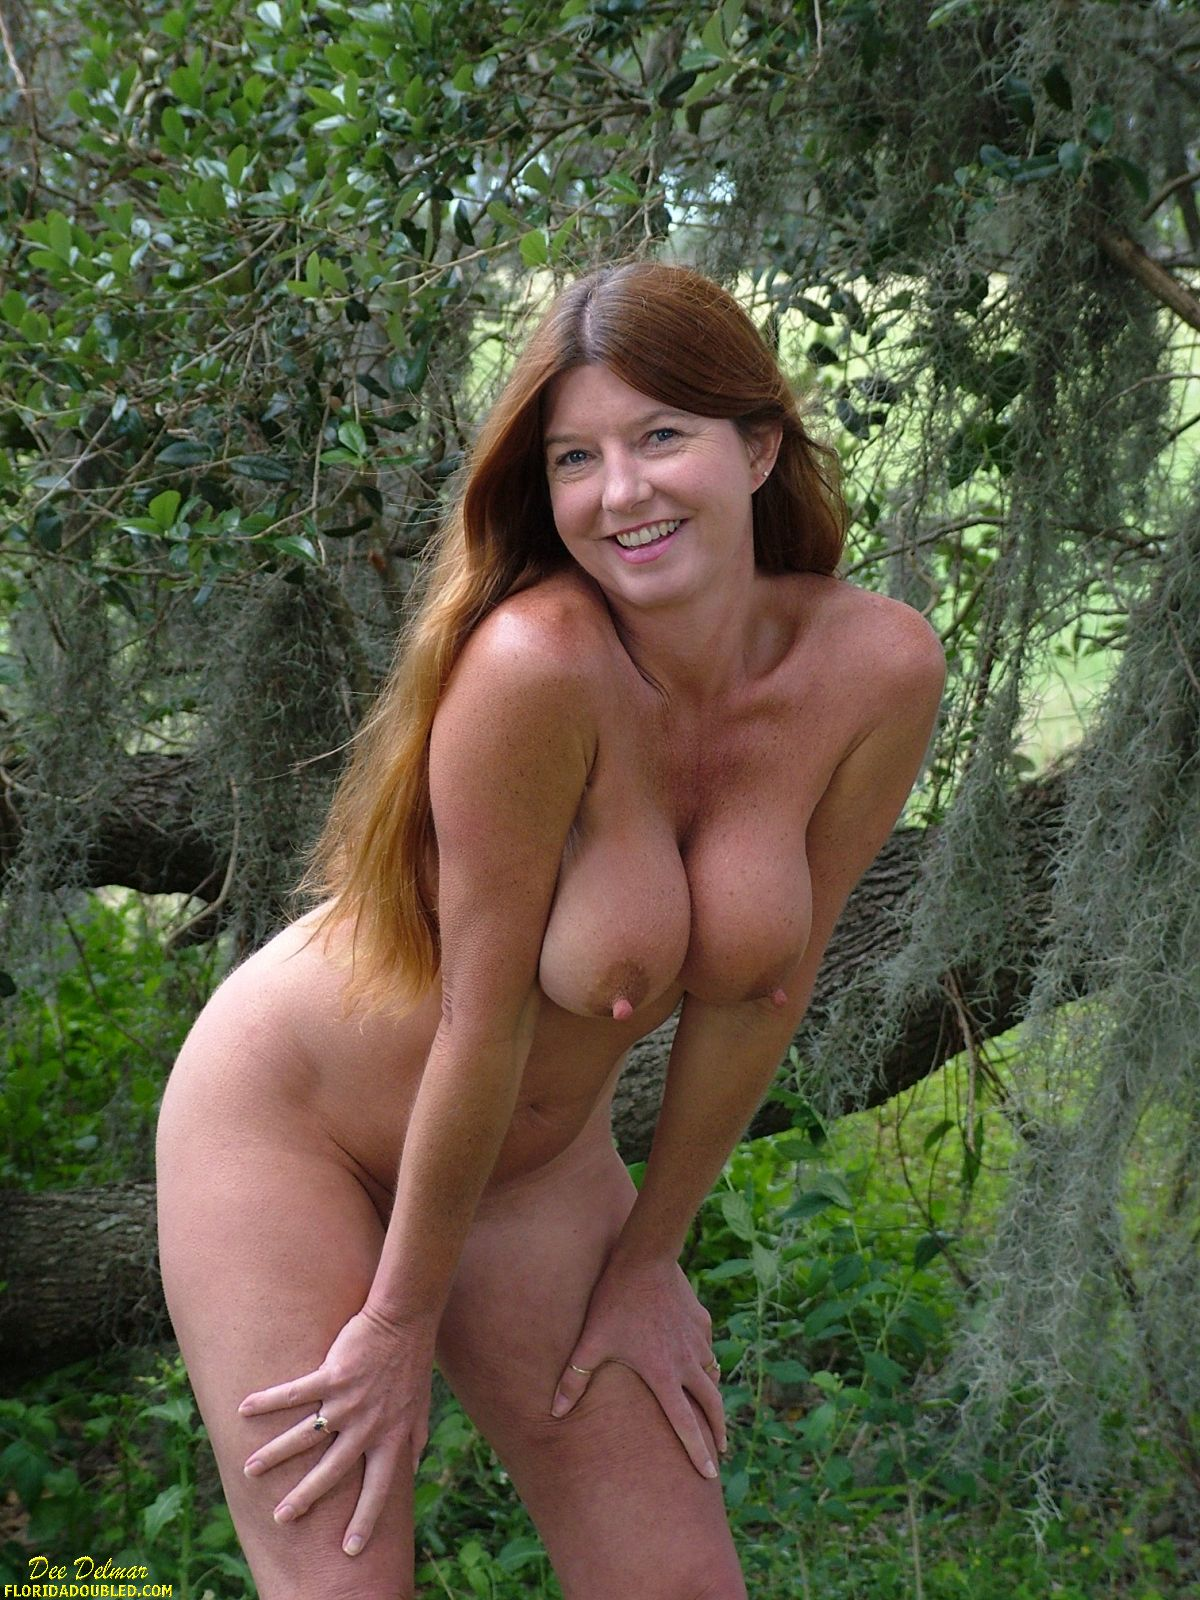 from Brennan girls in live oak florida naked